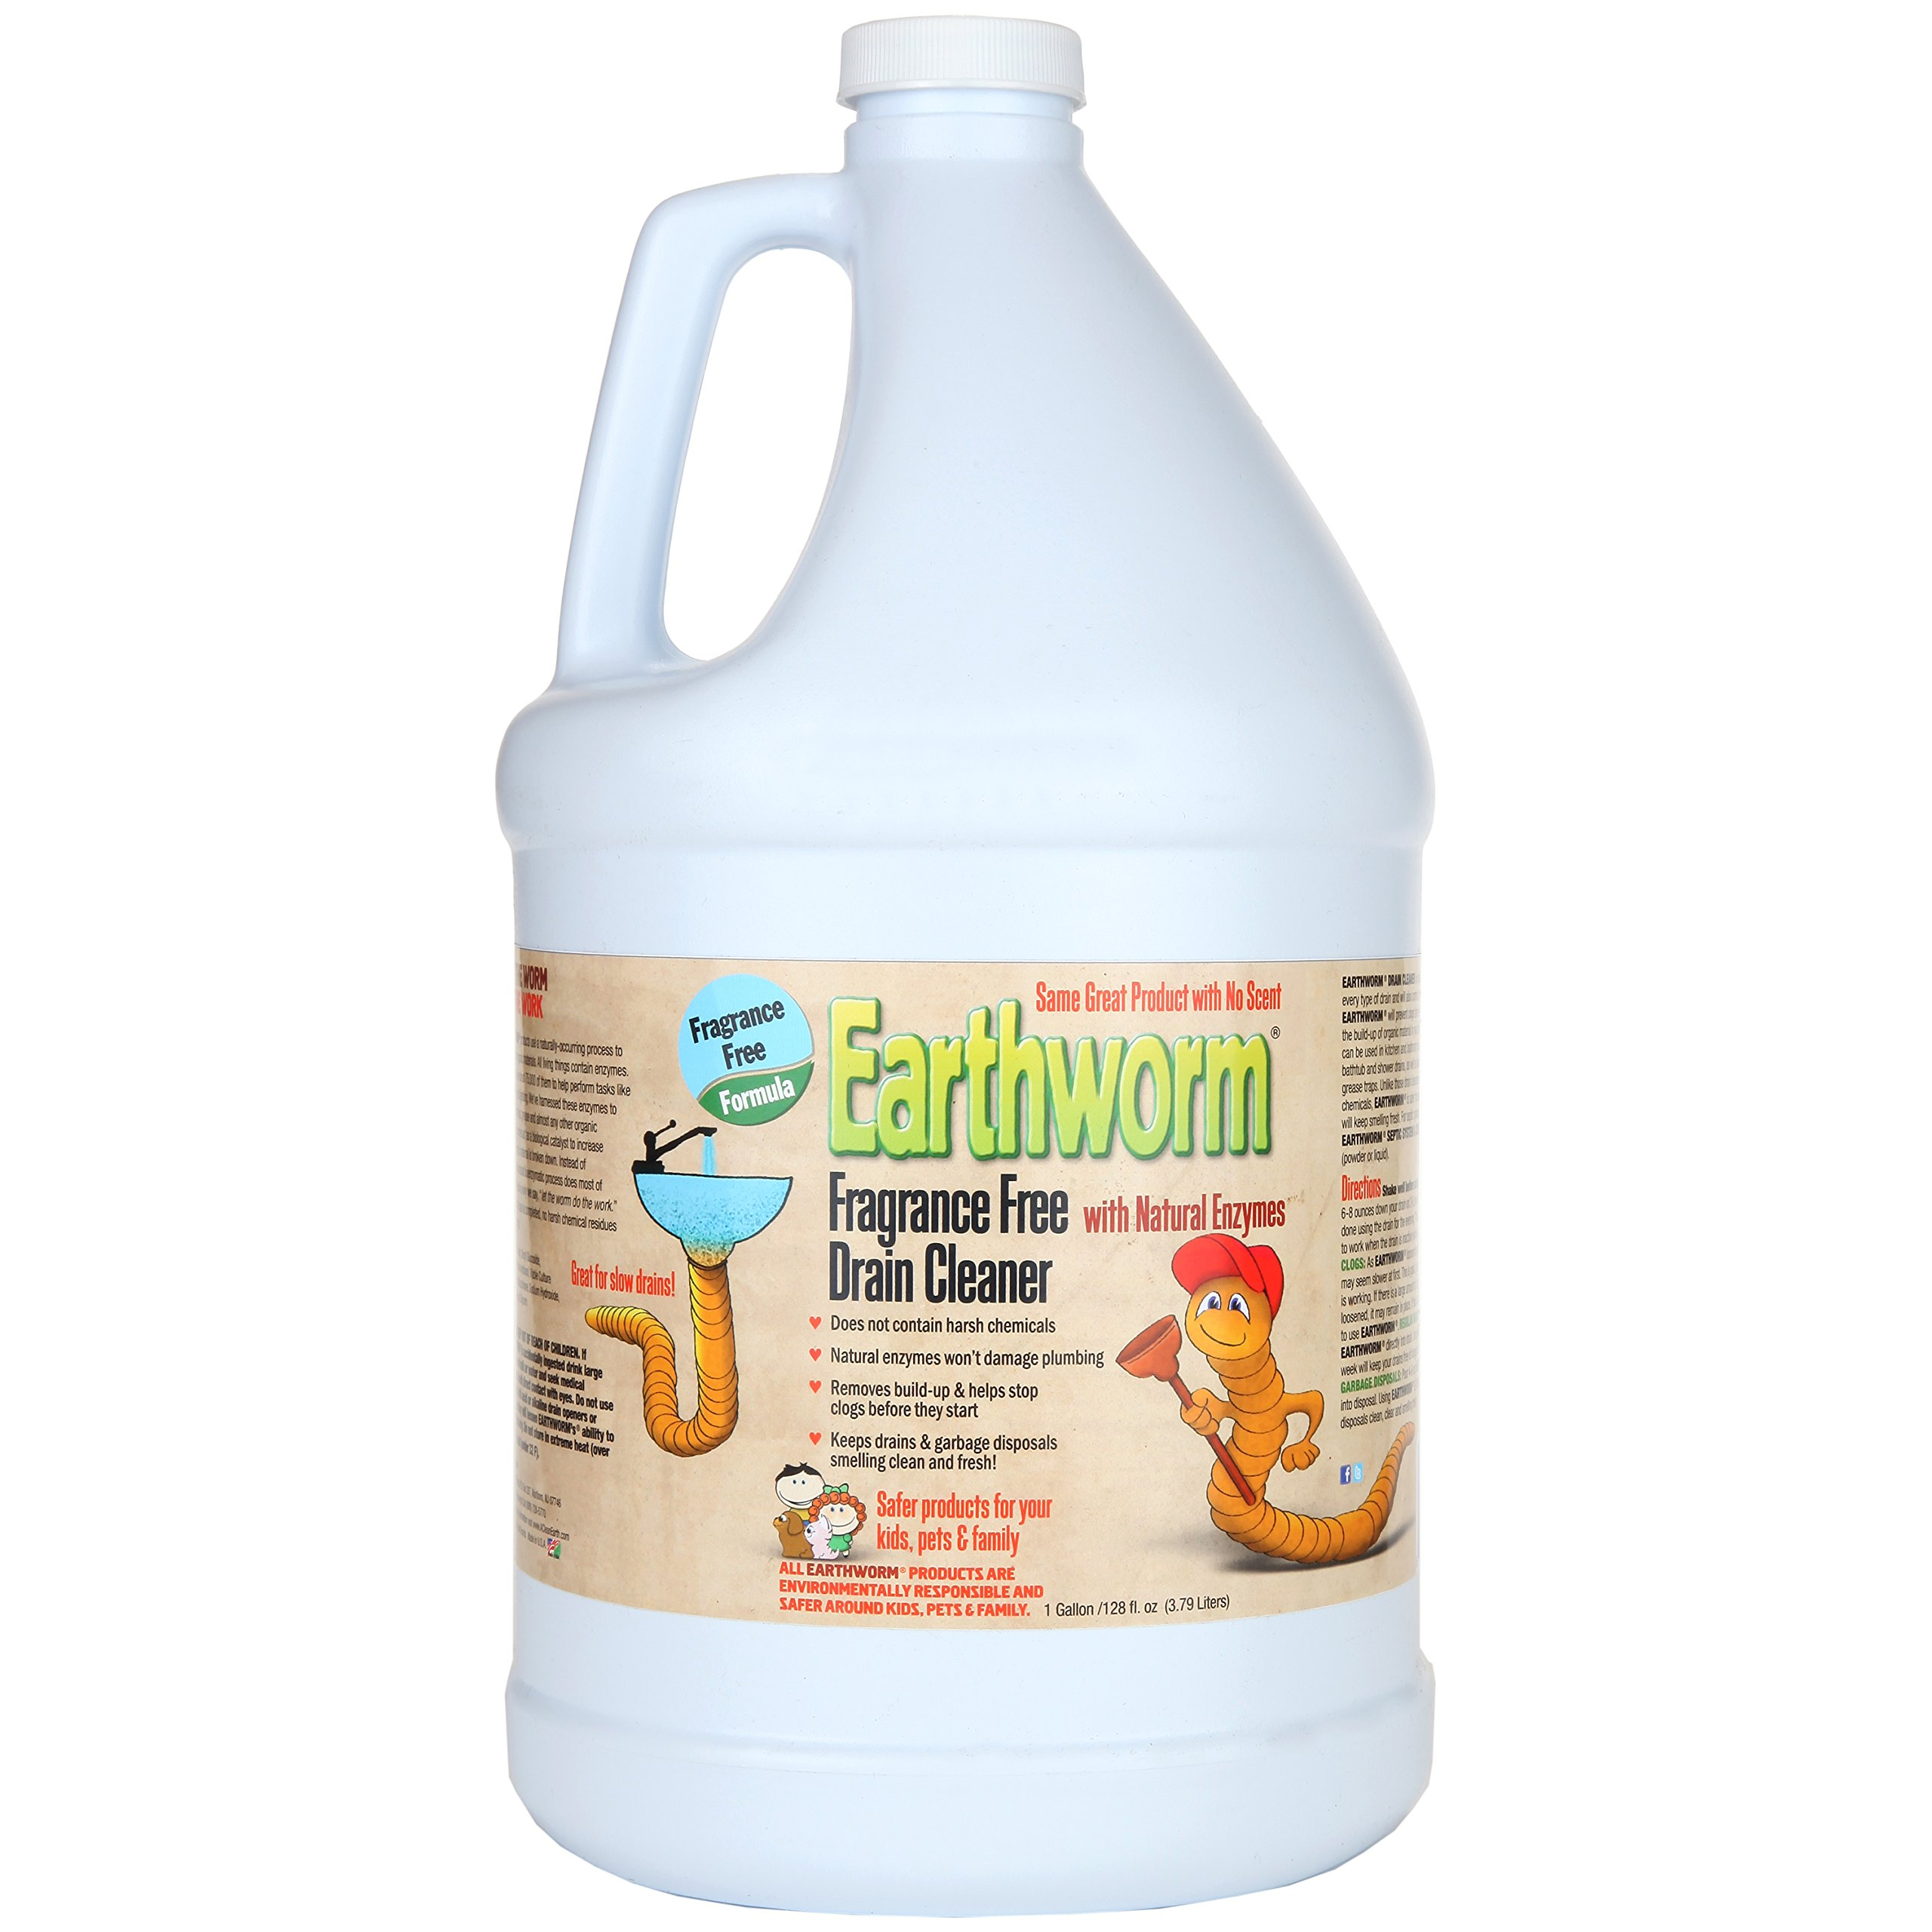 Earthworm Fragrance Free Drain Cleaner - Drain Opener - Natural Enzymes, Environmentally Responsible, Safer for Pets and Kids - 1 Gallon